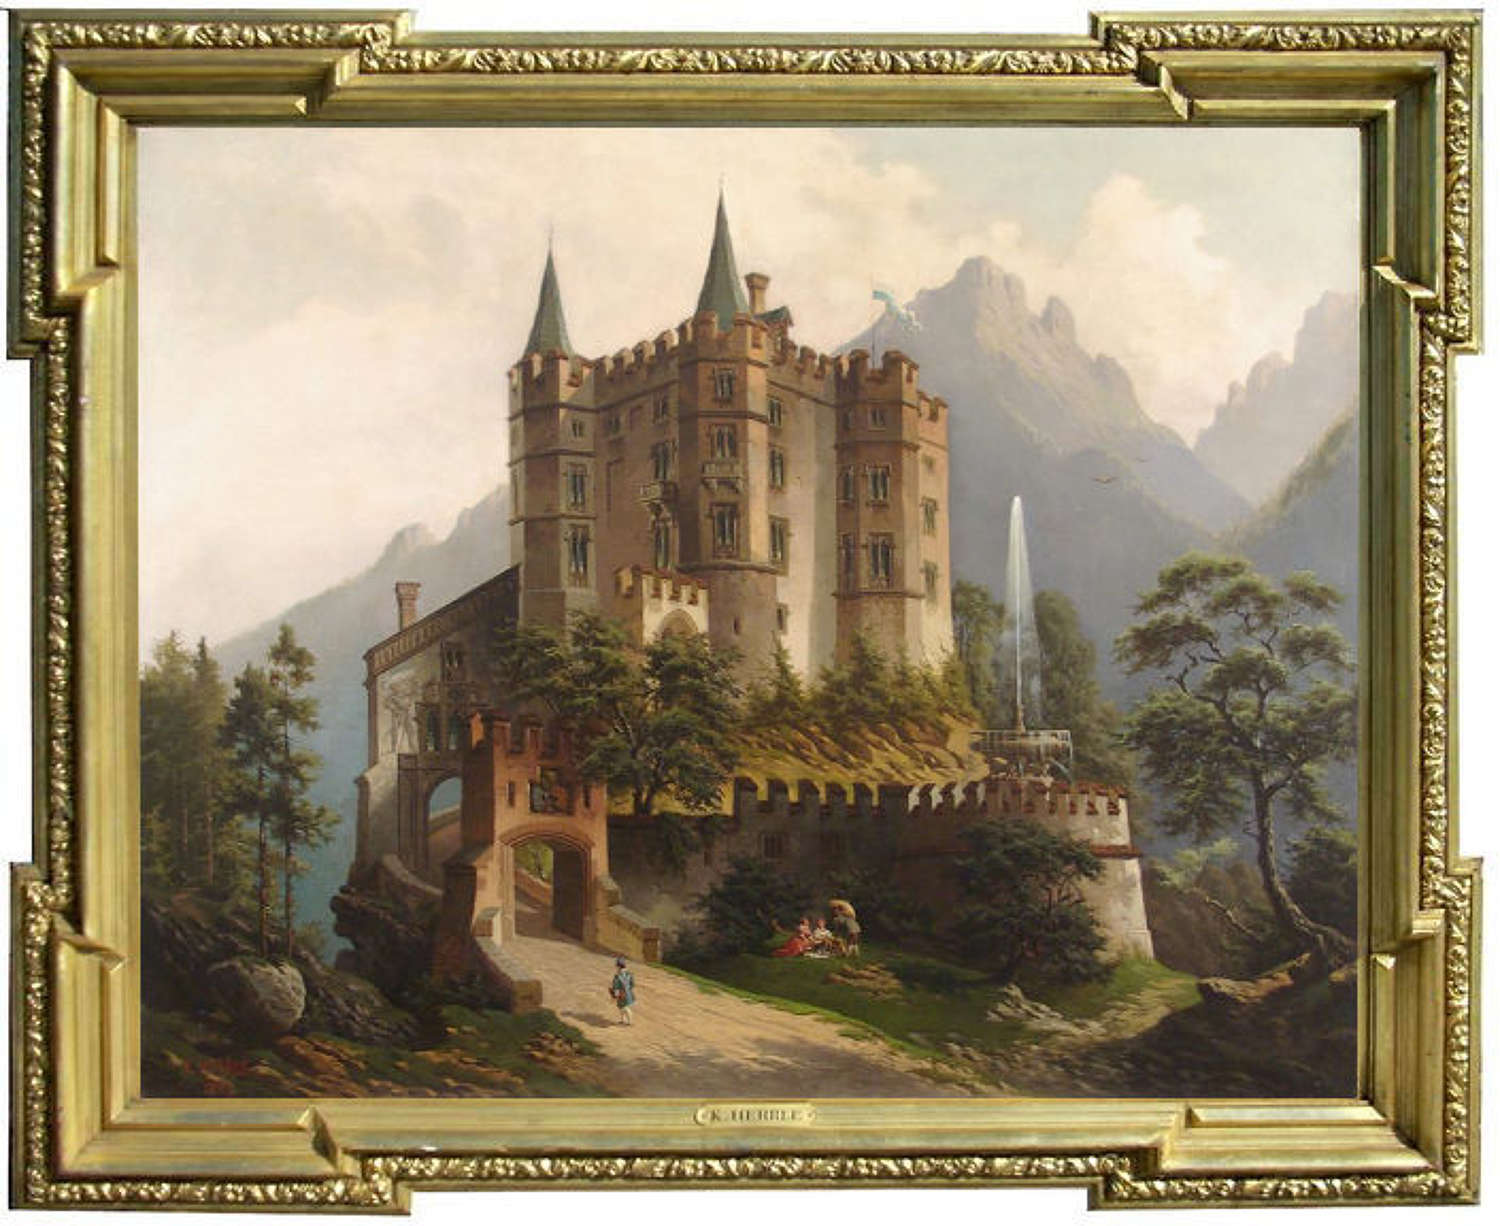 A Bavarian Castle in the Mountains ~ Karl Herrle